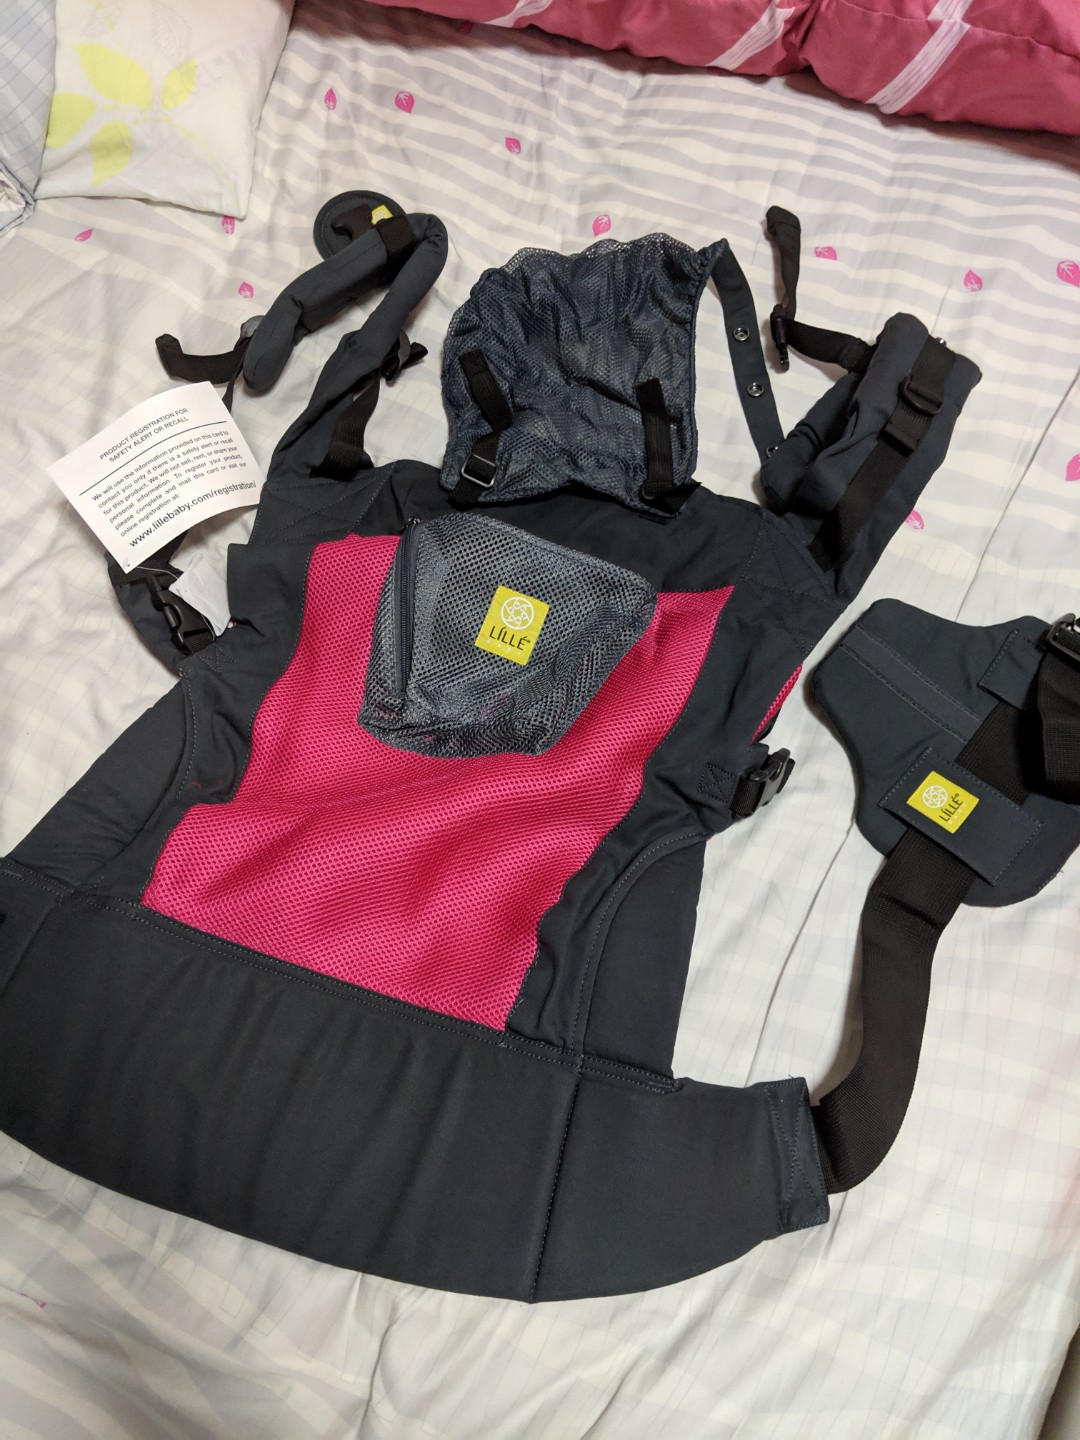 Bnib Lillebaby Carryon Carrier Charcoal Berry Airflow Babies